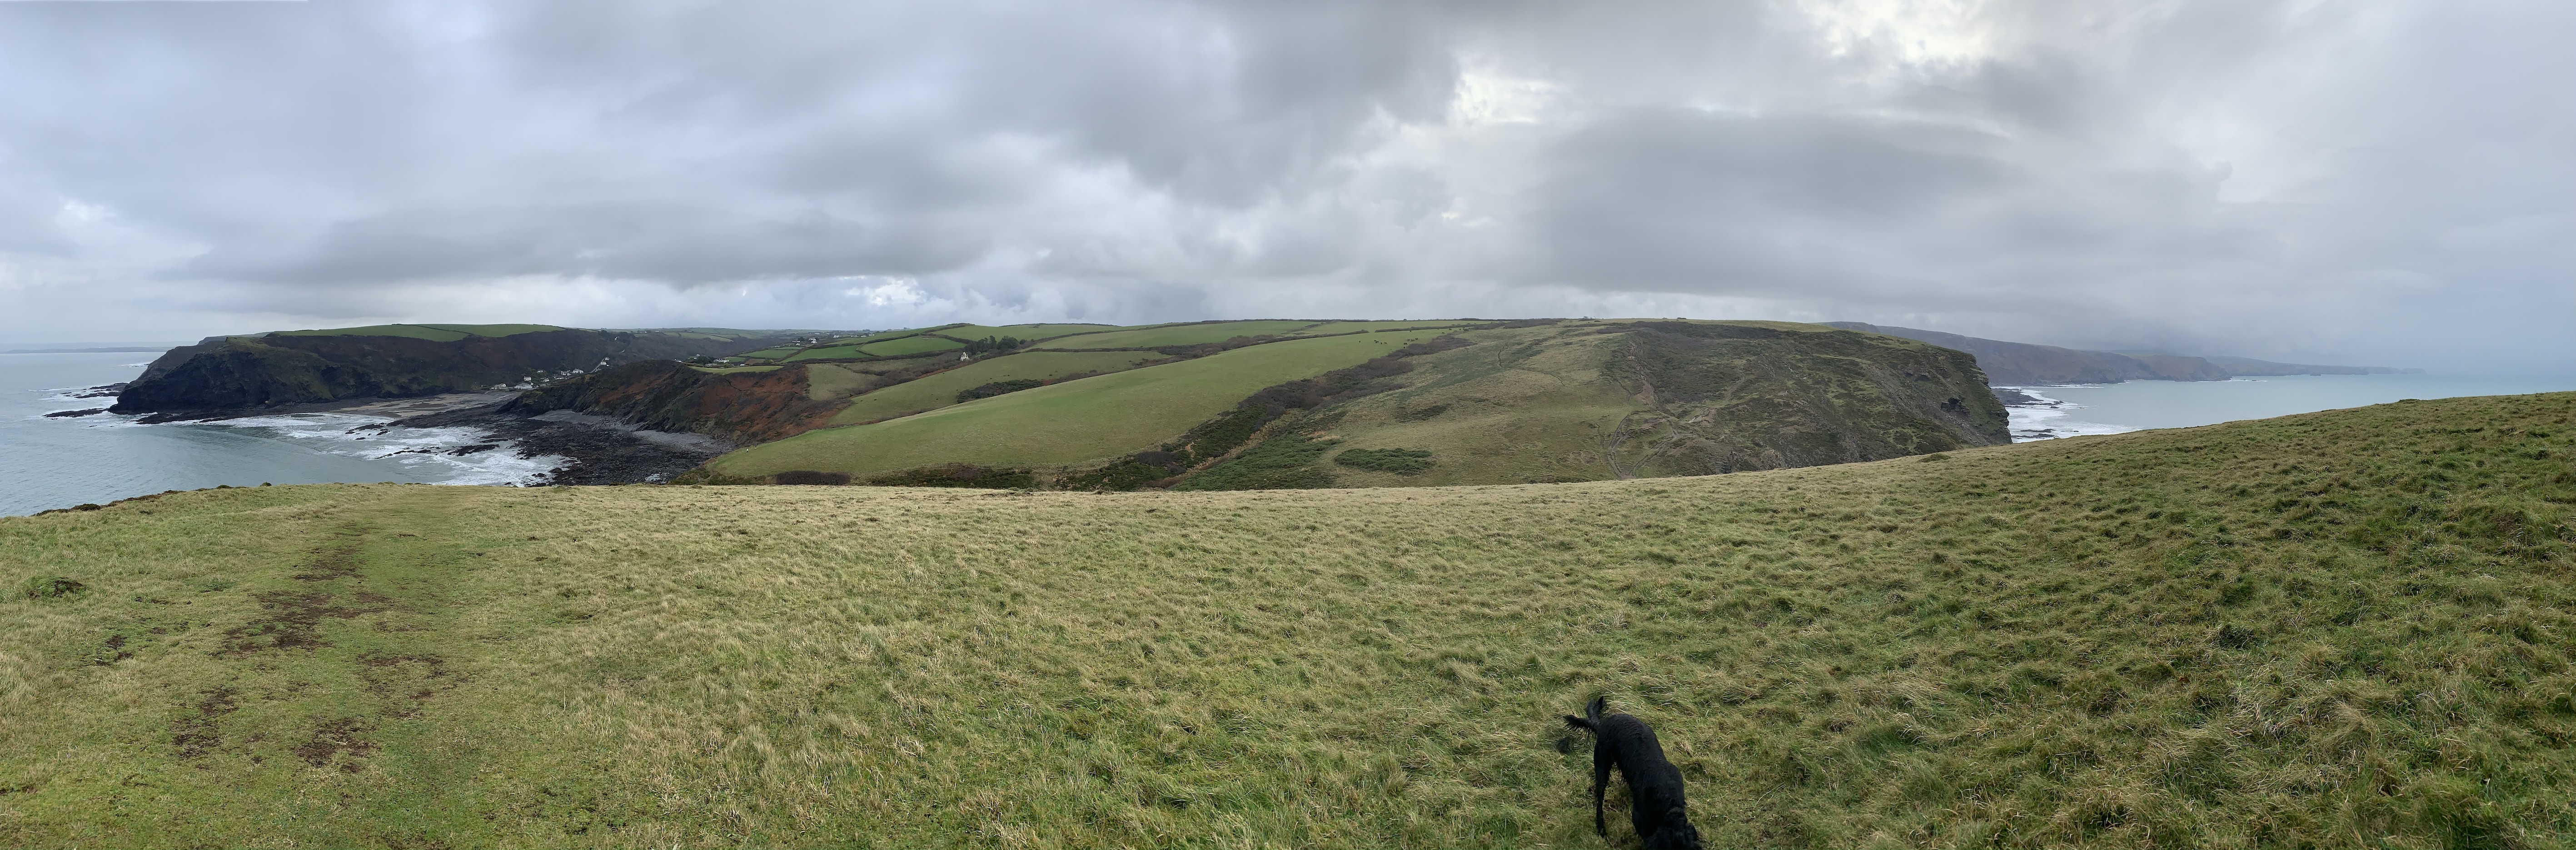 Panoramic views The South West Coast Path walk from Crackington Haven to Boscastle